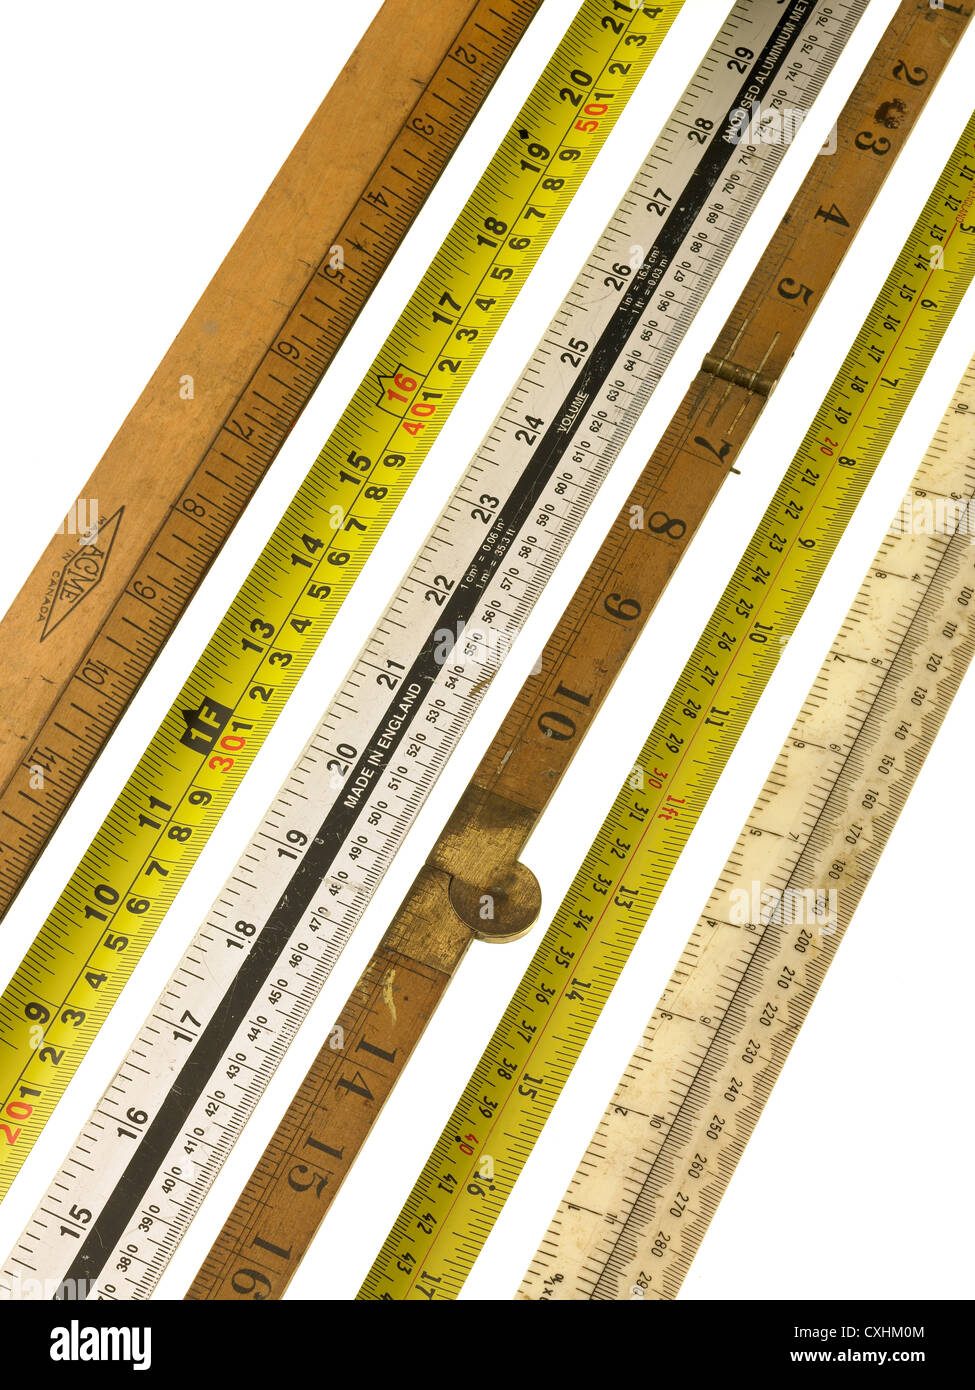 tools, rulers and measures - Stock Image